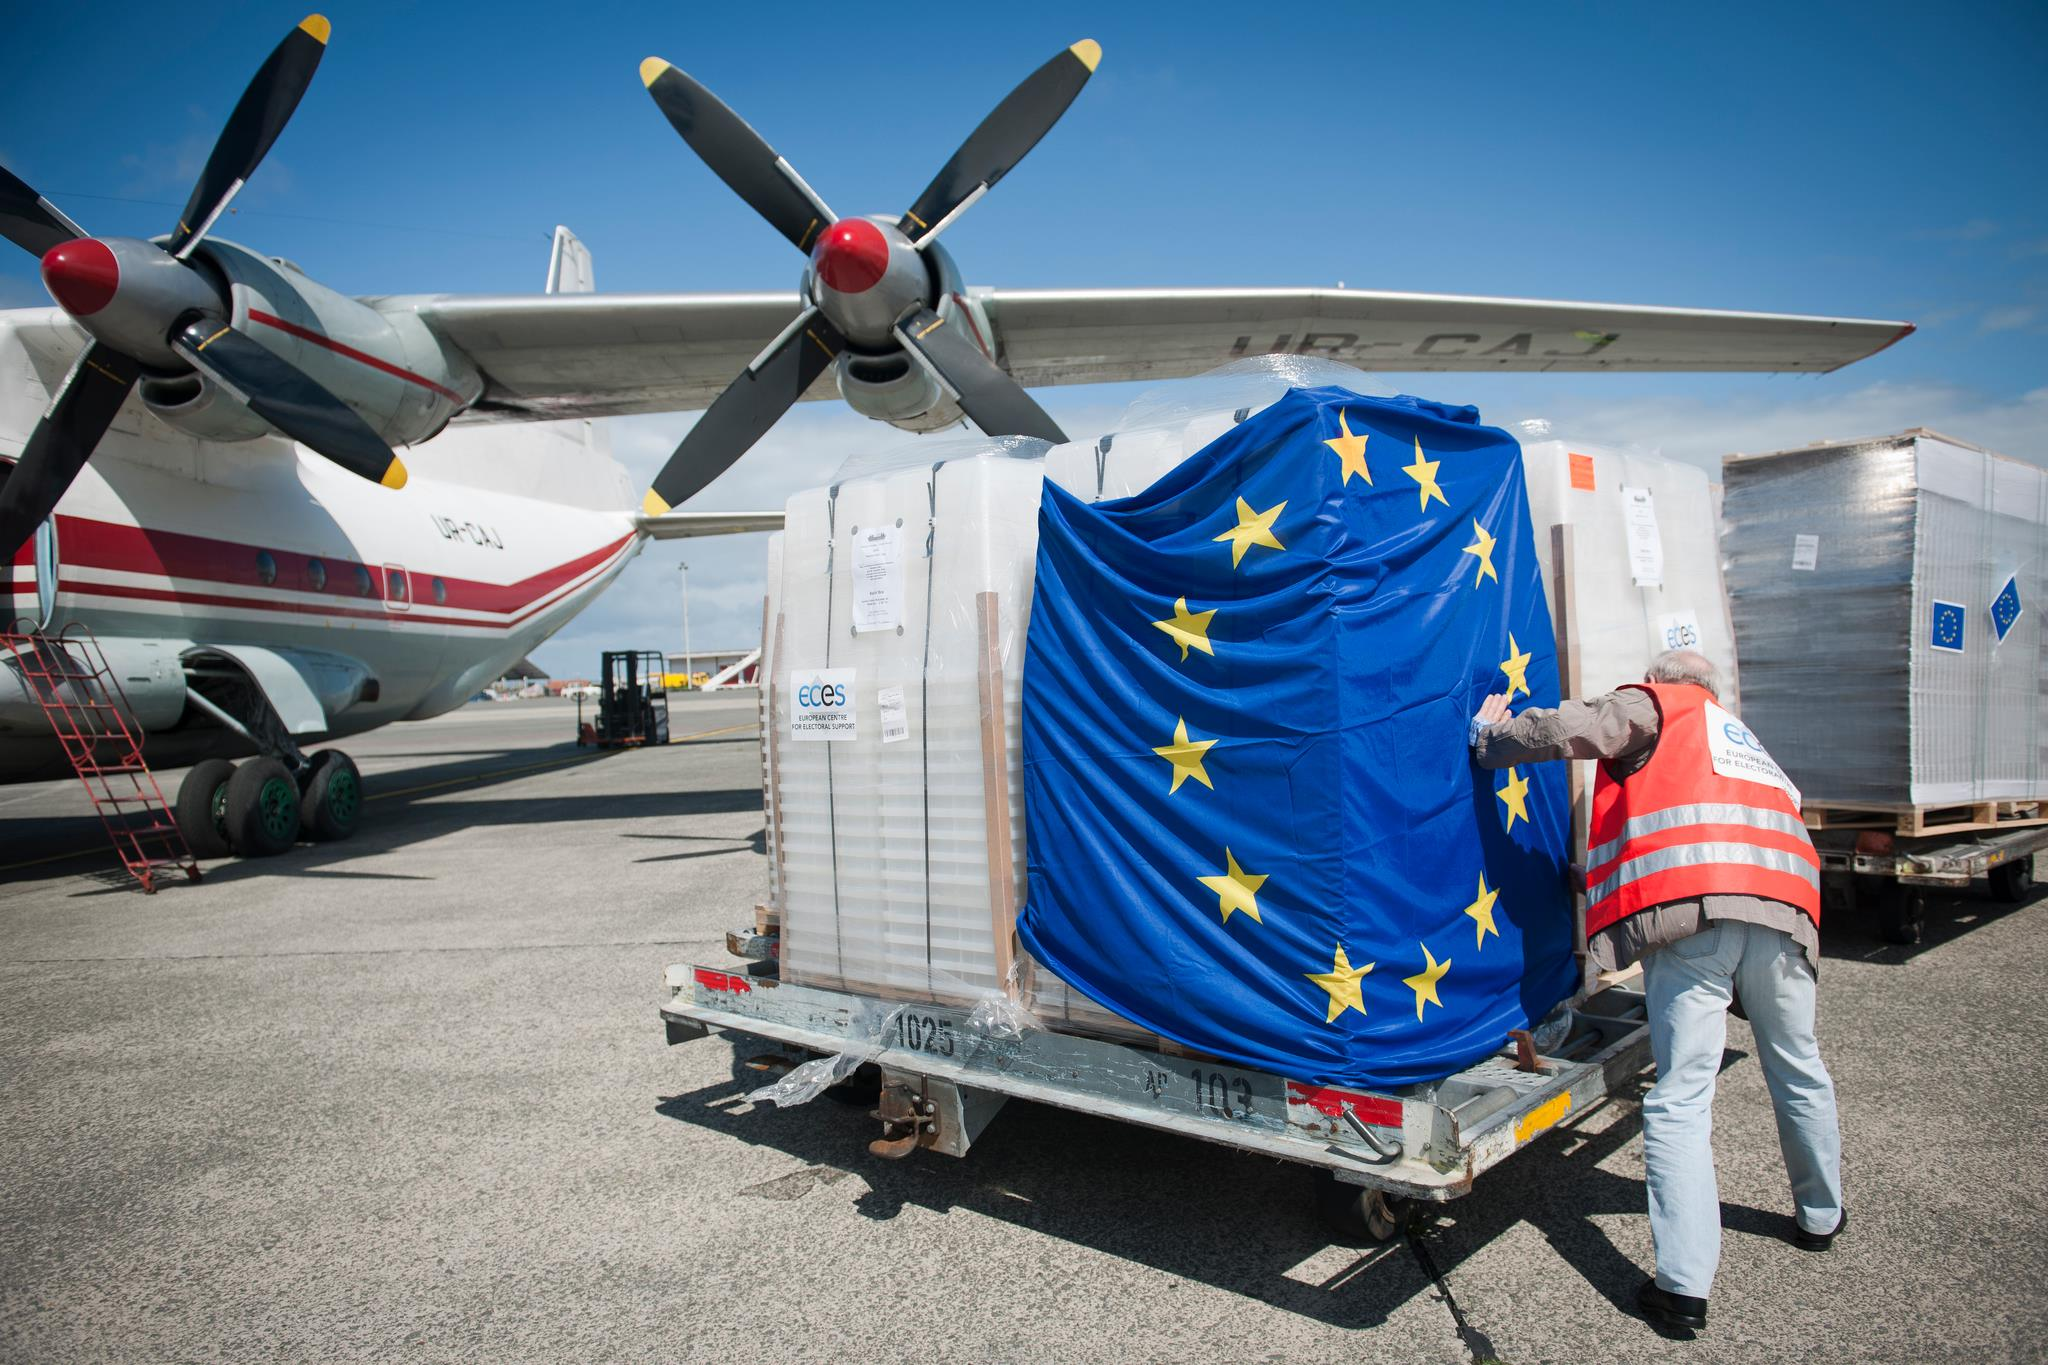 The EU is providing people, know-how and practical assistance to help Libya improve management of its borders